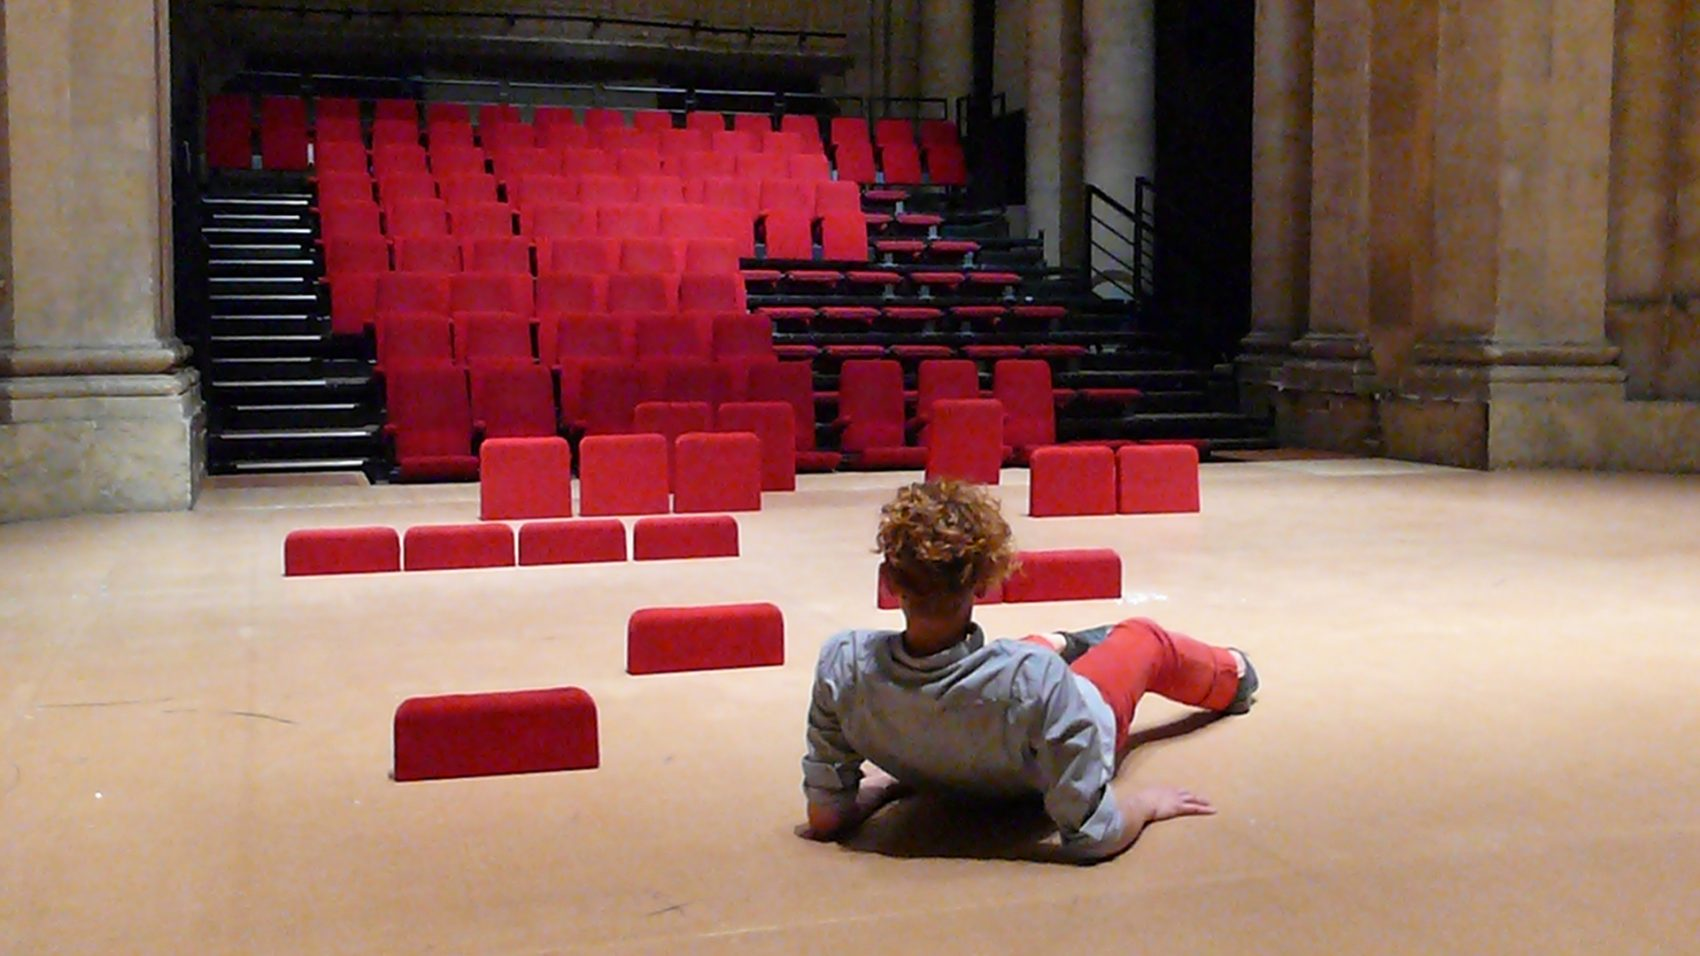 Nadia Lauro – River of seats - River of seats 2012